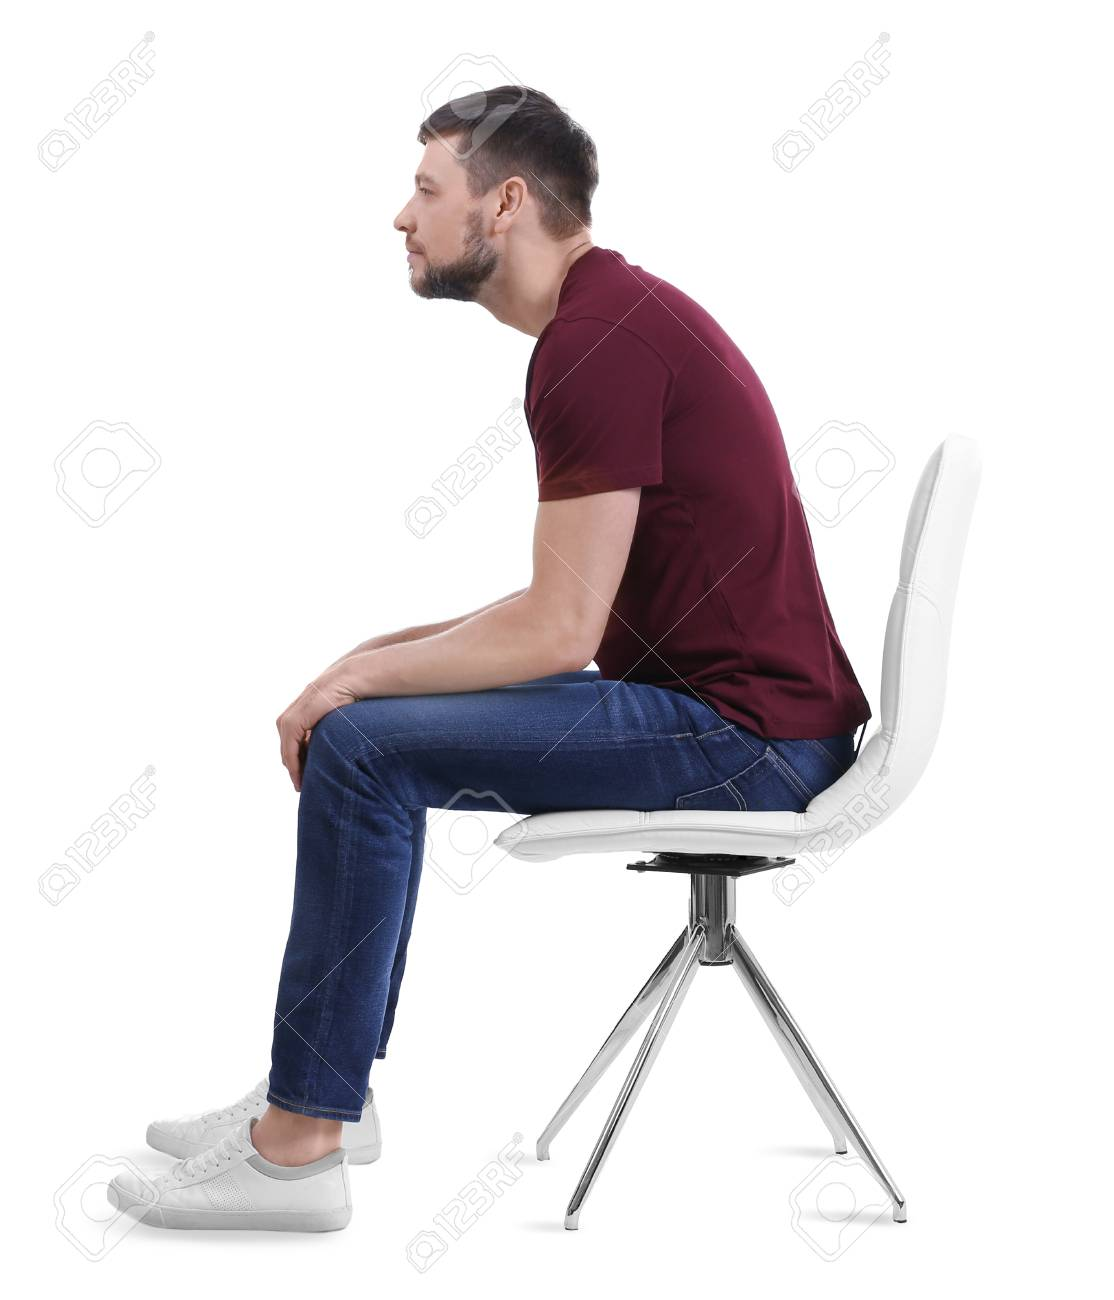 Posture Concept Man Sitting On Chair Against White Background 1114x1300